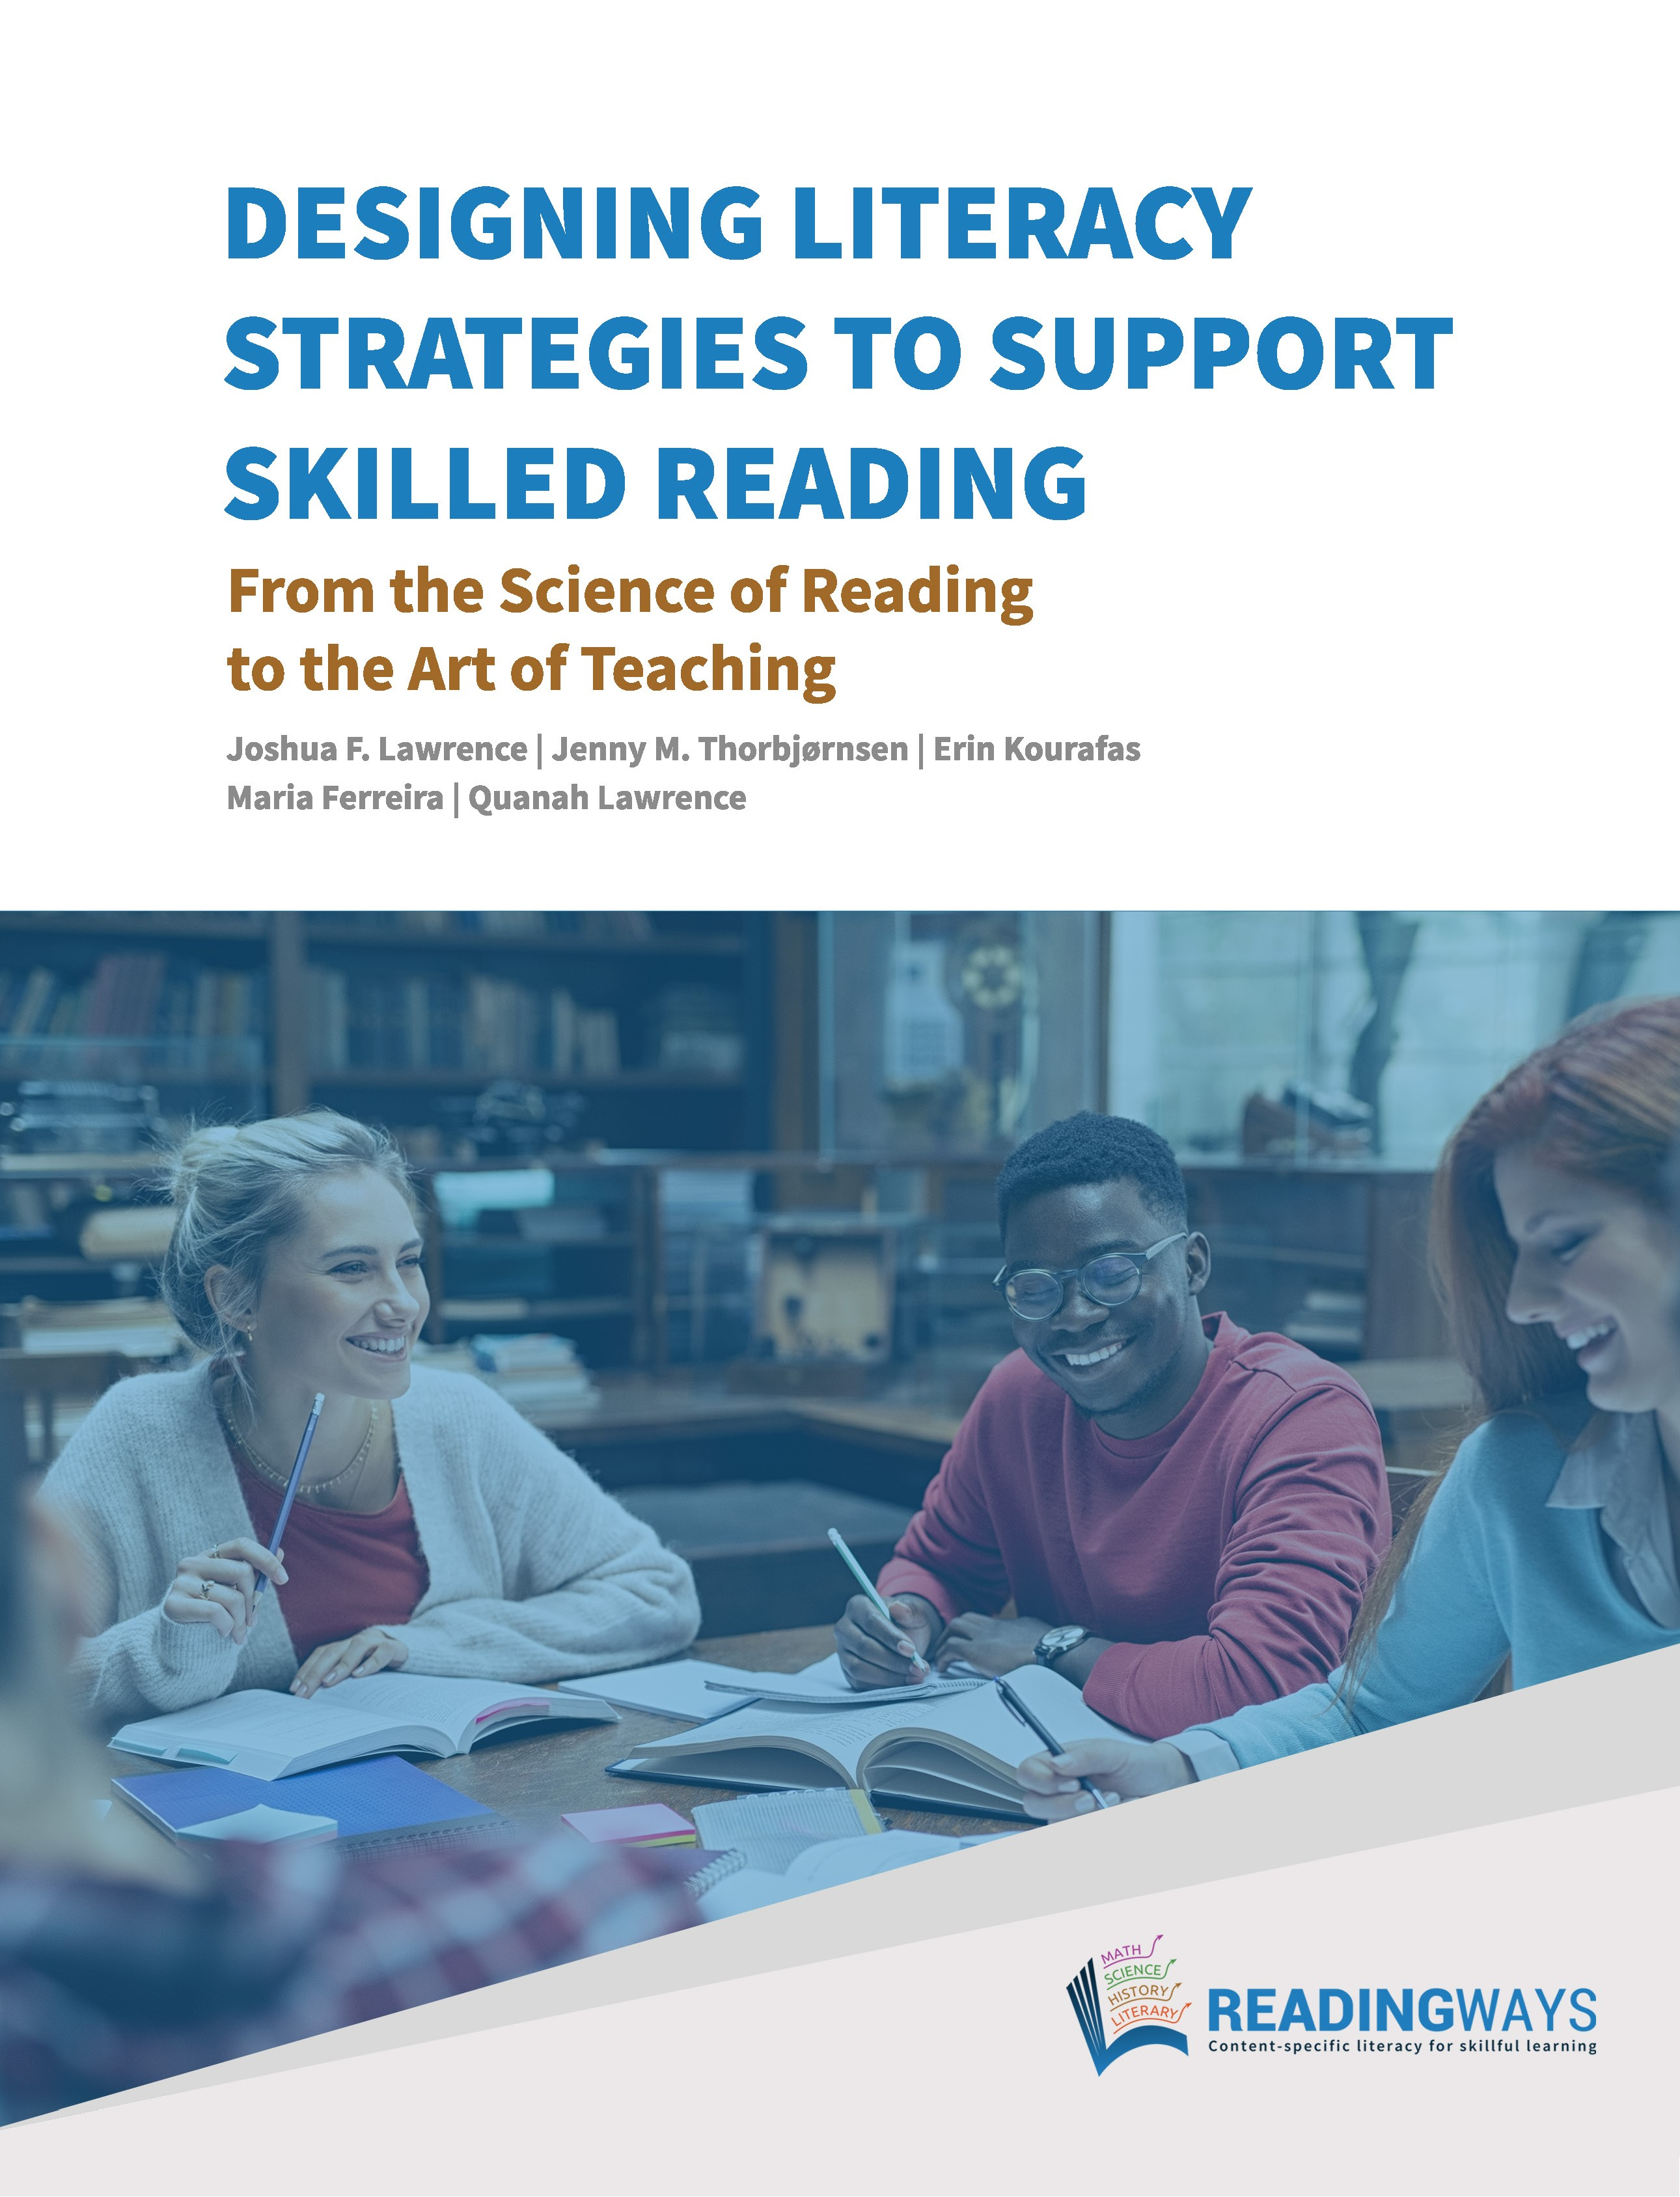 Designing literacy strategies to support skilled reading